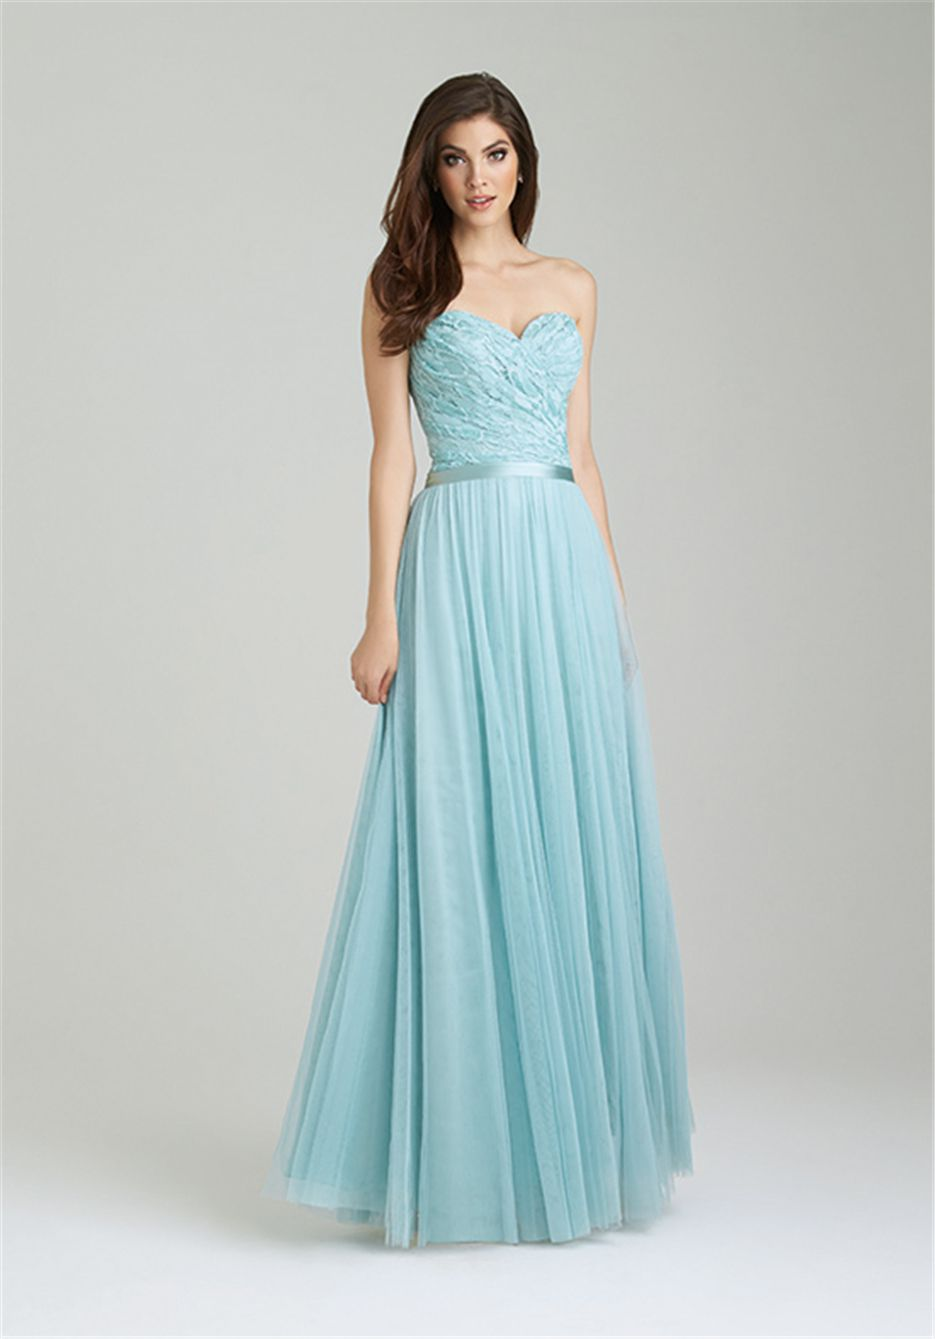 Great Macys Mother Of The Bride Dress Images - Wedding Ideas ...